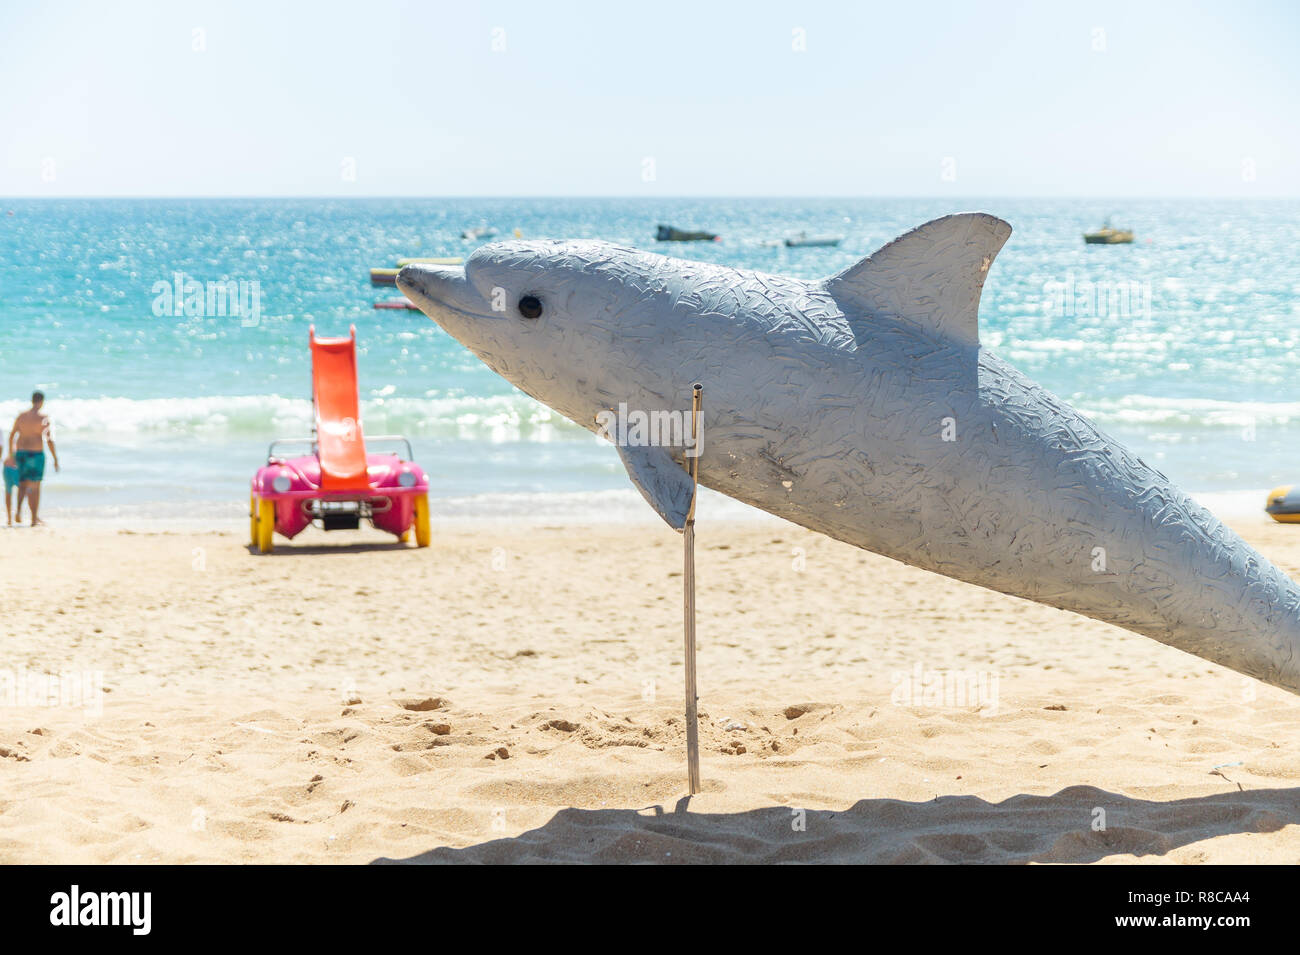 Dolphin sculpture indicating dolphin watch opportunity on the Albufeira beach, Algarve, Portugal - Stock Image